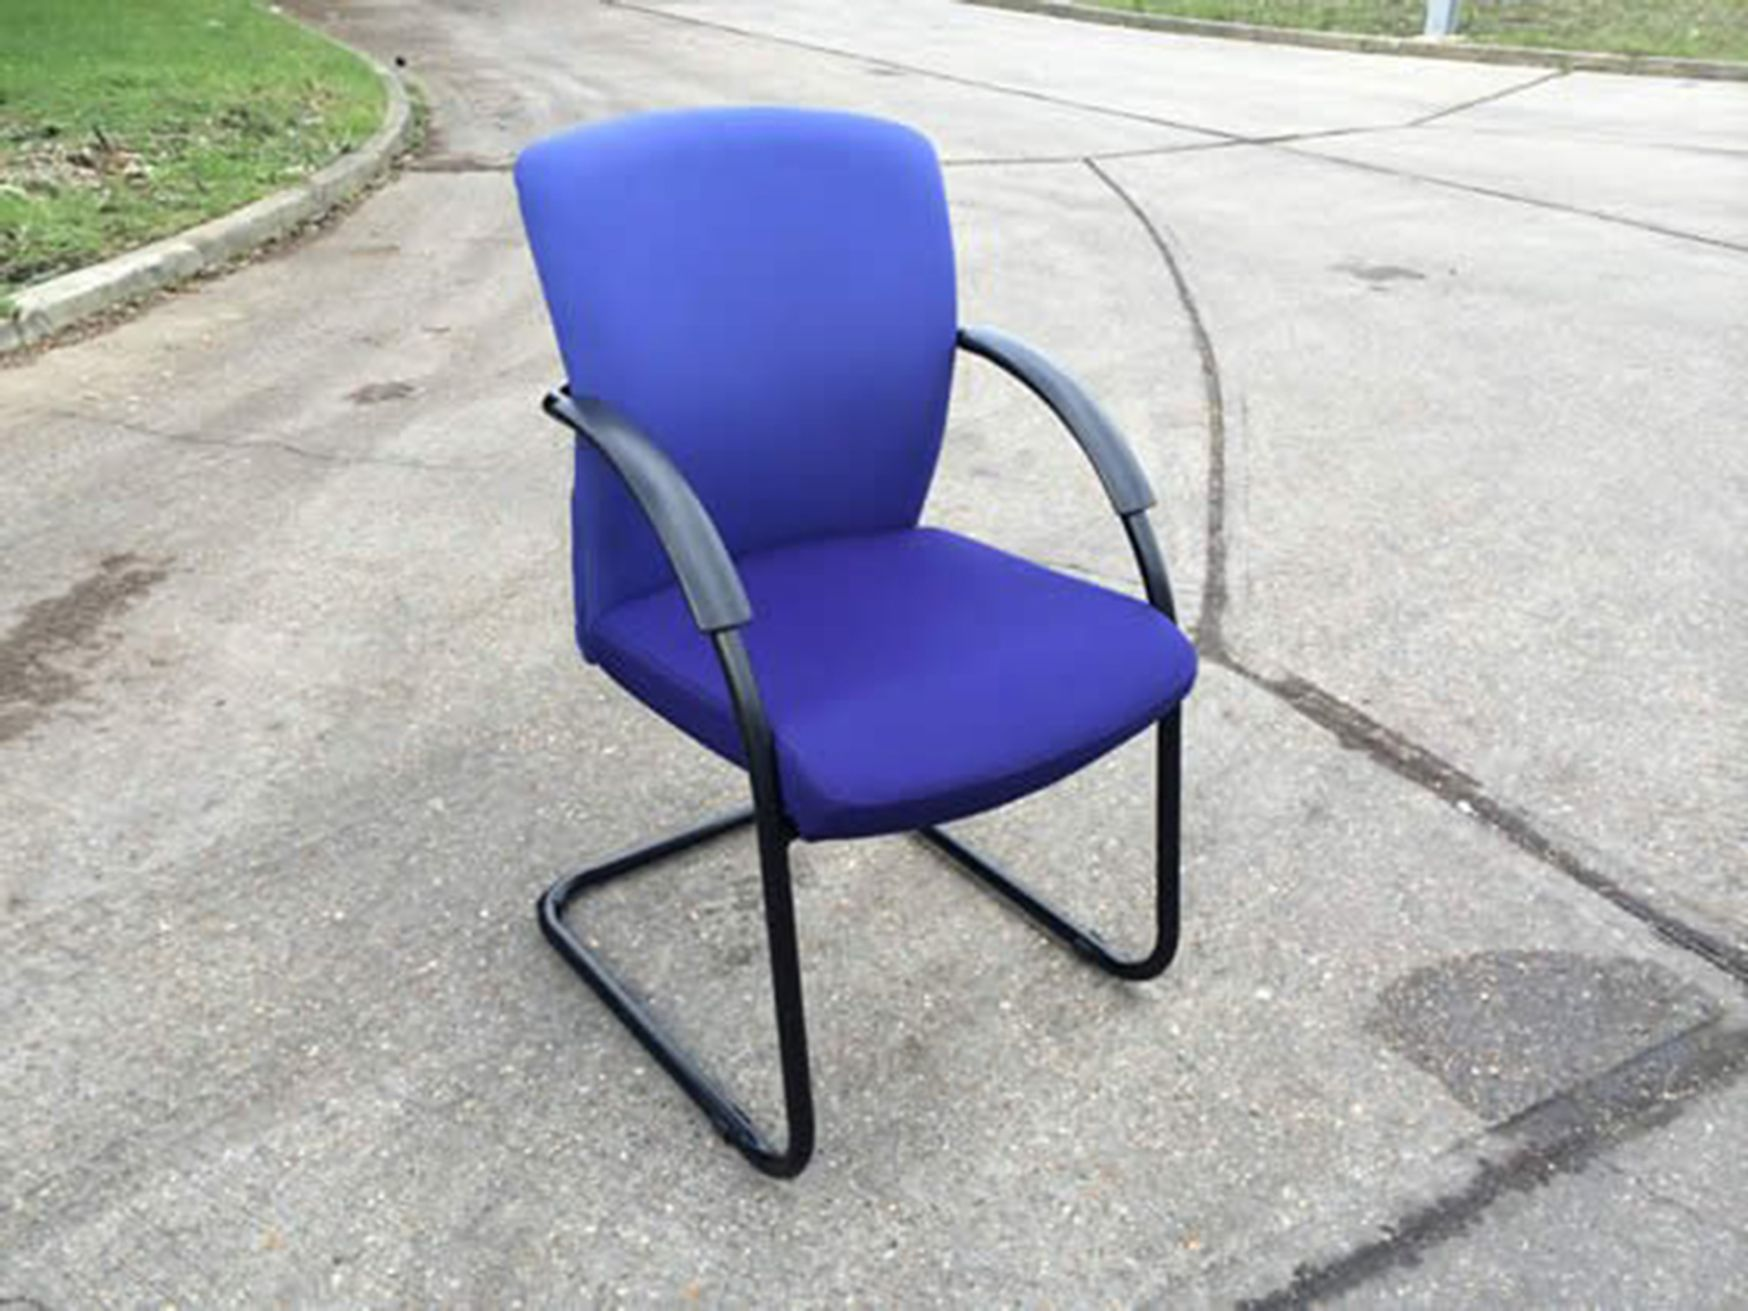 Modern meeting chairs with light purple back/dark purple seat. Black cantilever frame.